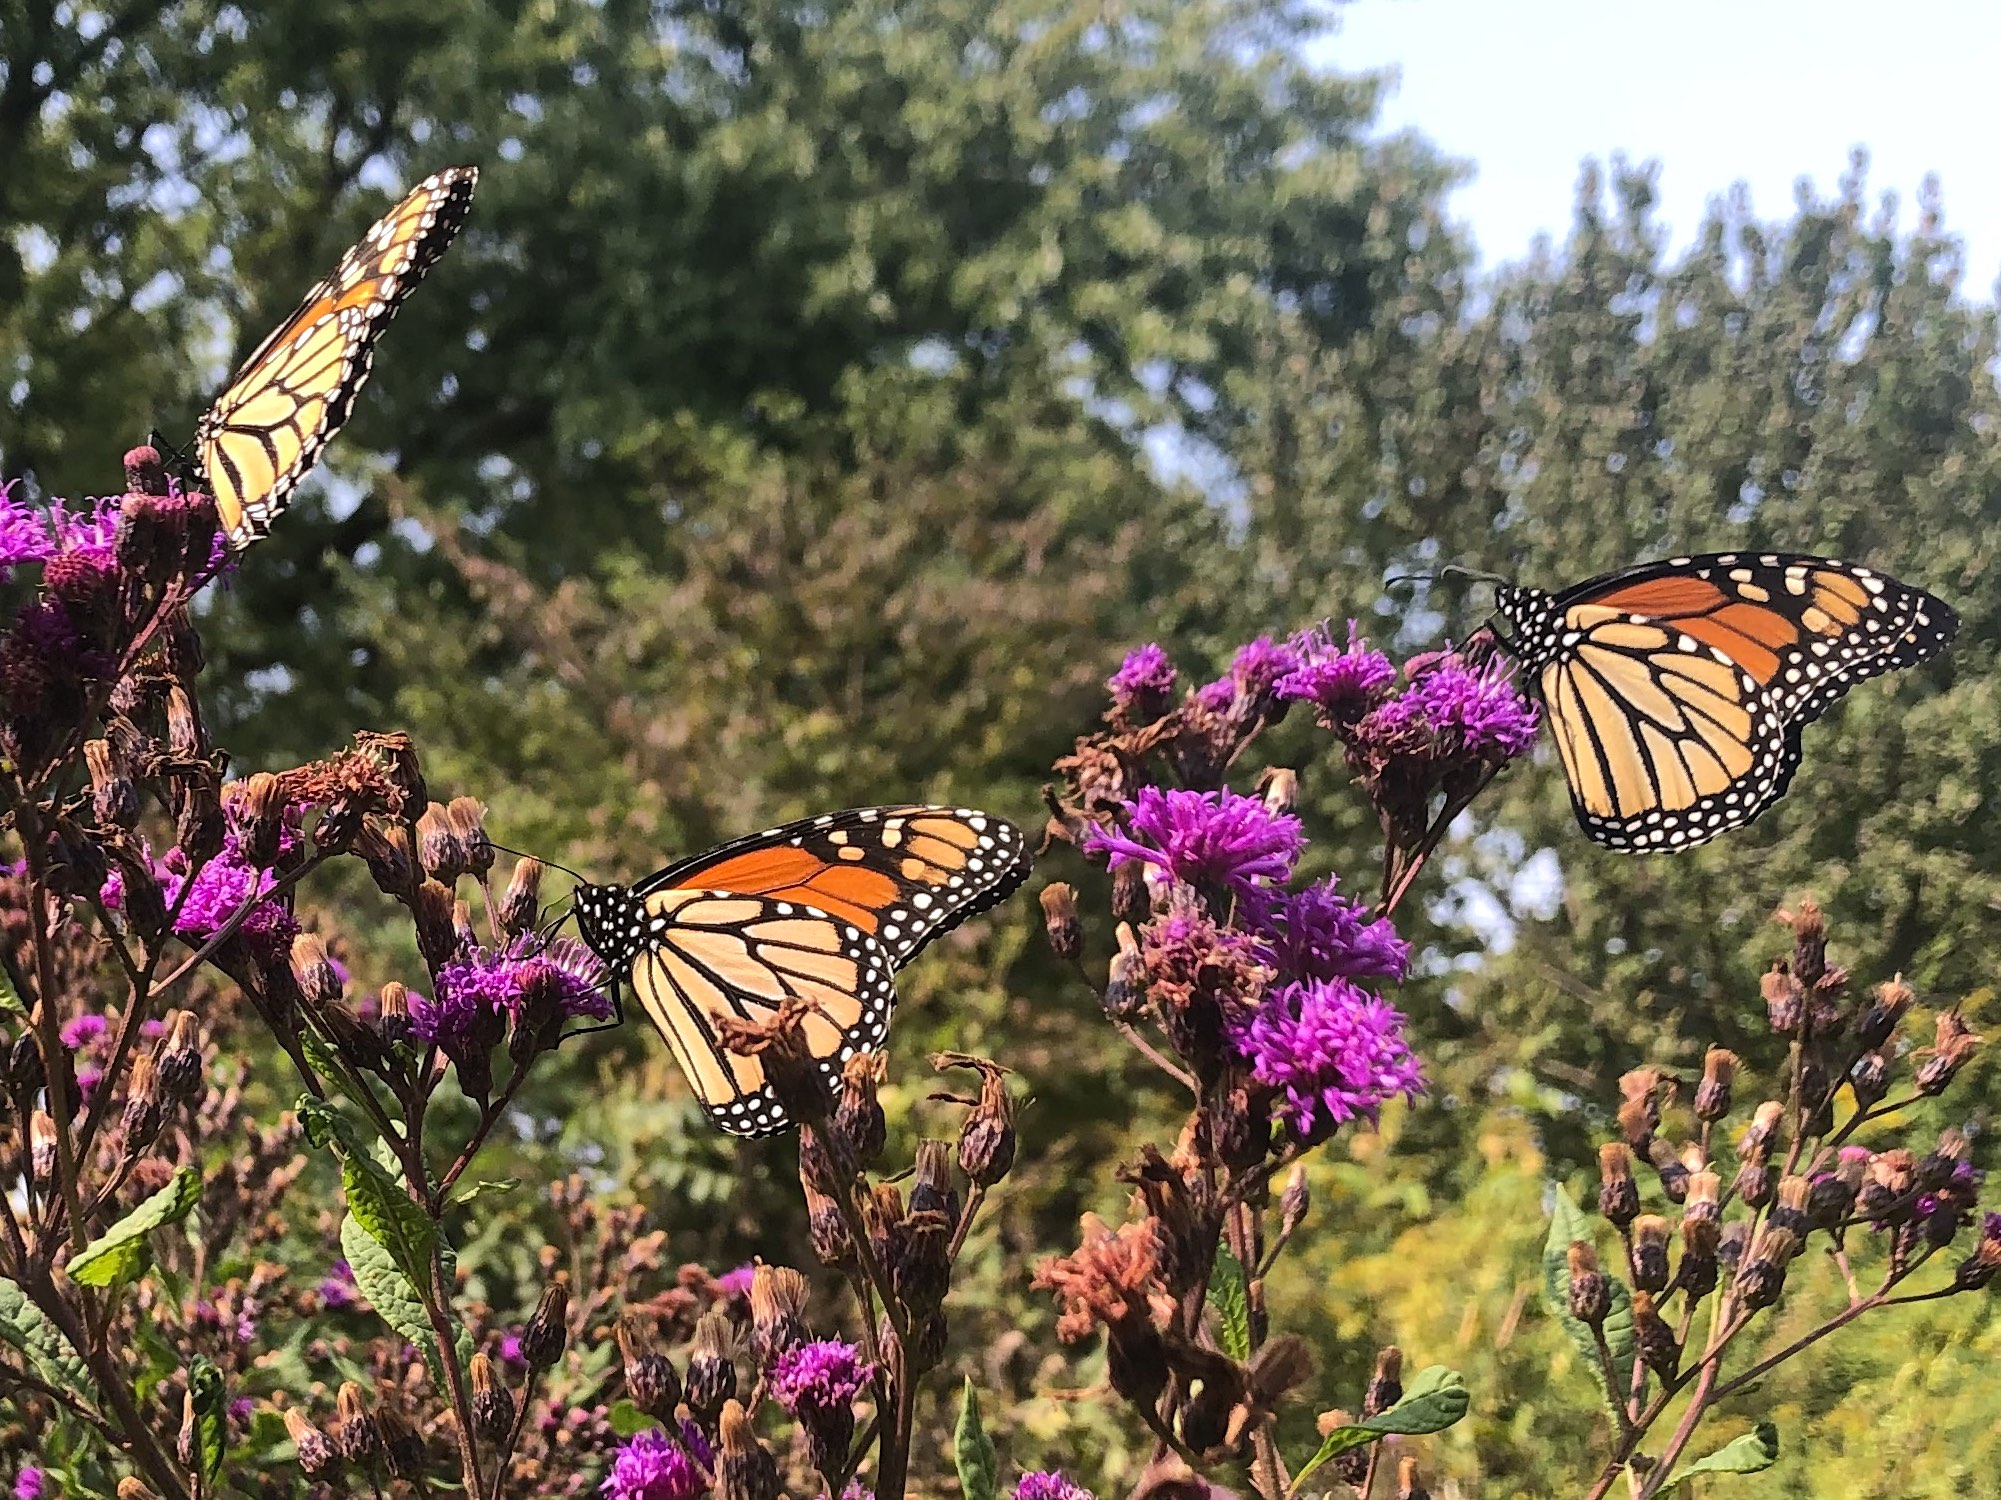 Monarchs on Ironweed on September 15, 2020.